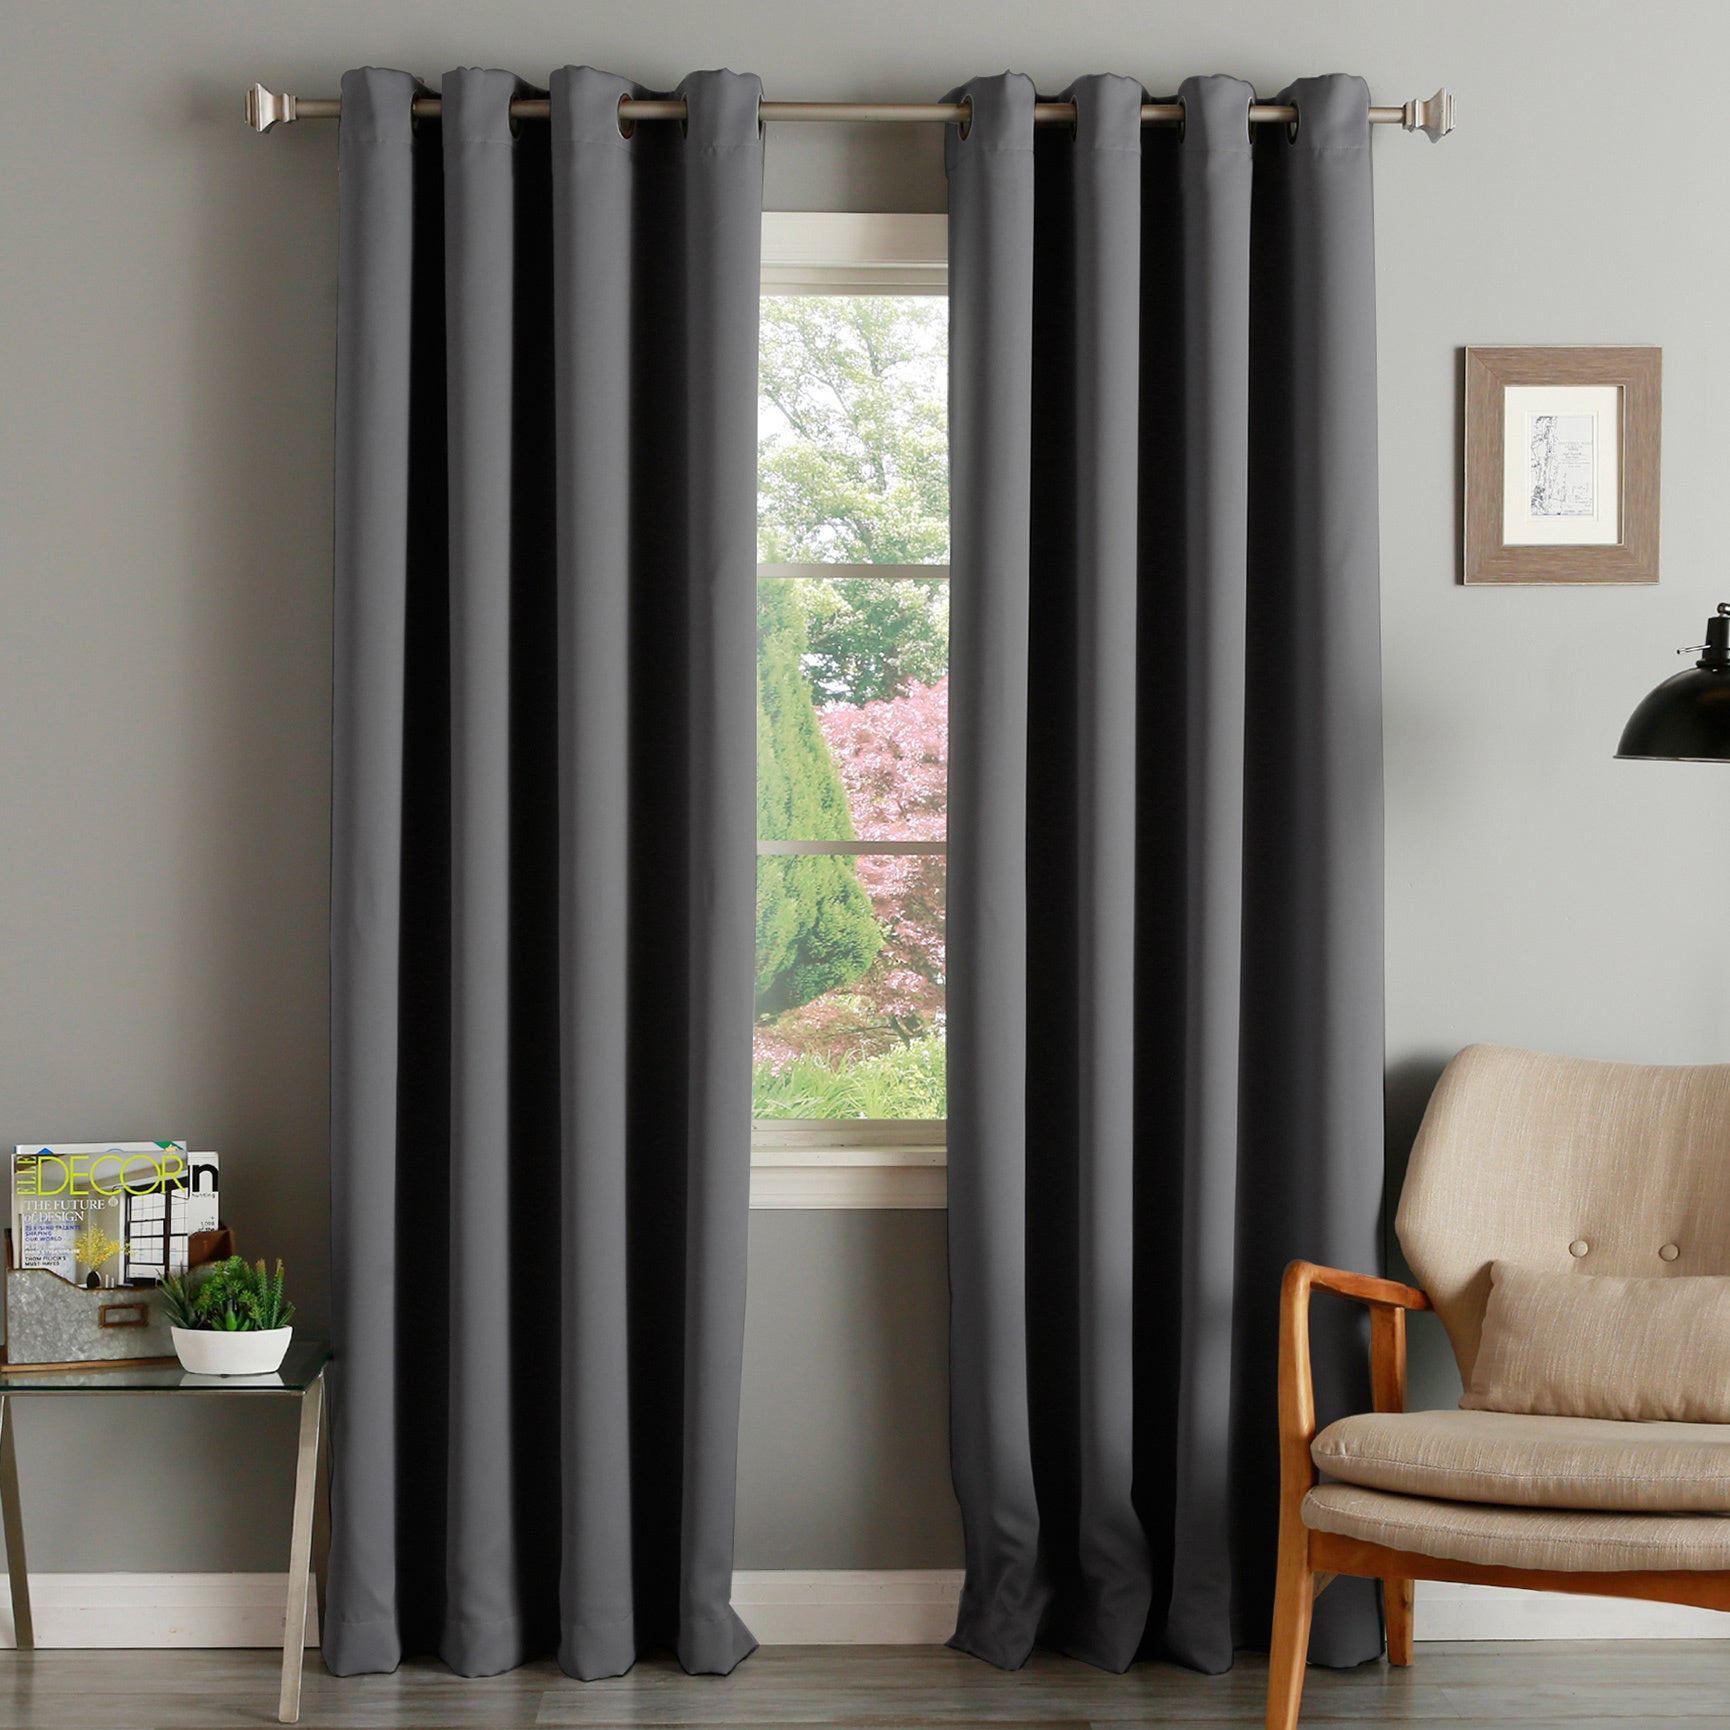 Aurora Home Thermal Insulated Blackout Grommet Top 84 Inch Curtain Panel Pair – 52 X 84 Throughout Grommet Top Thermal Insulated Blackout Curtain Panel Pairs (View 2 of 20)